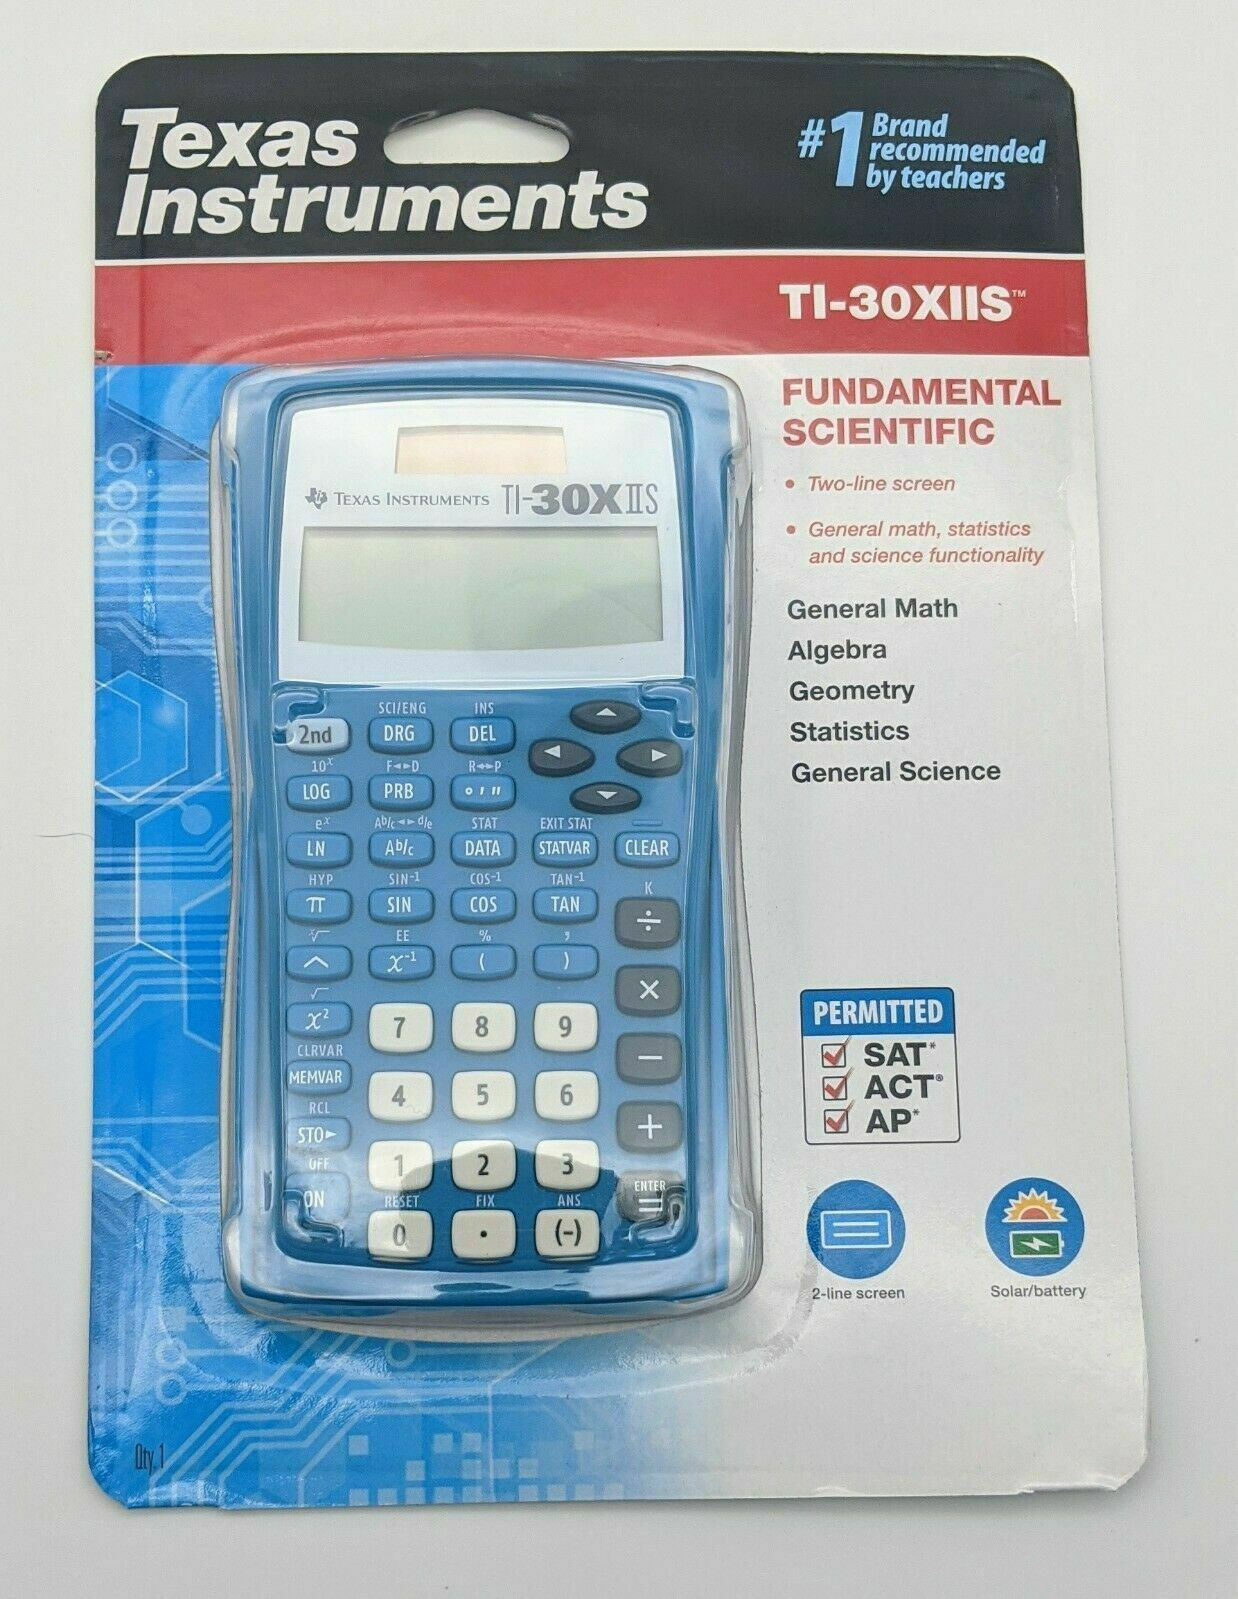 Import Texas Instruments TI-30XIIS TI-30X IIS Scientific Calculator, Black with Blue Accents from USA